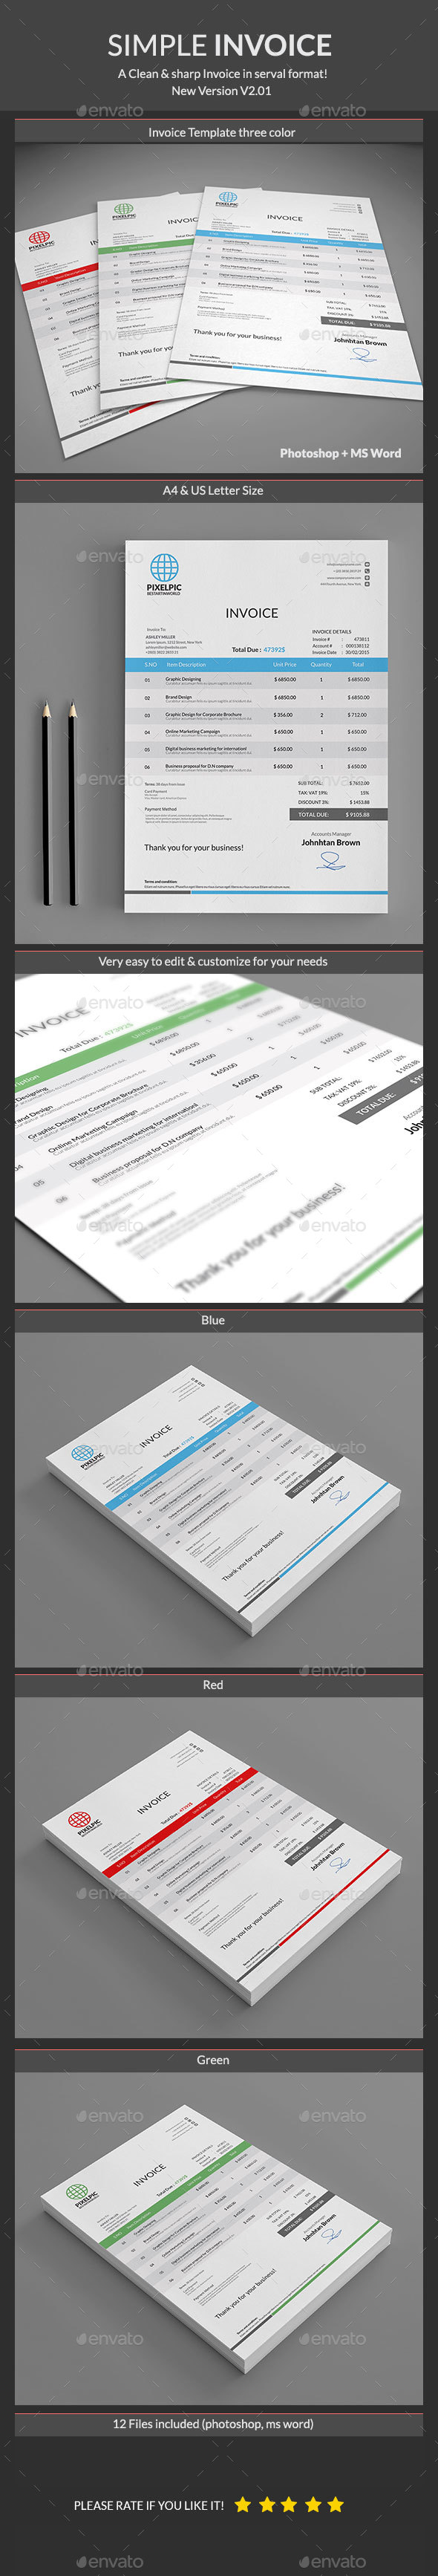 Pin de best Graphic Design en Proposal & Invoice Templates | Pinterest